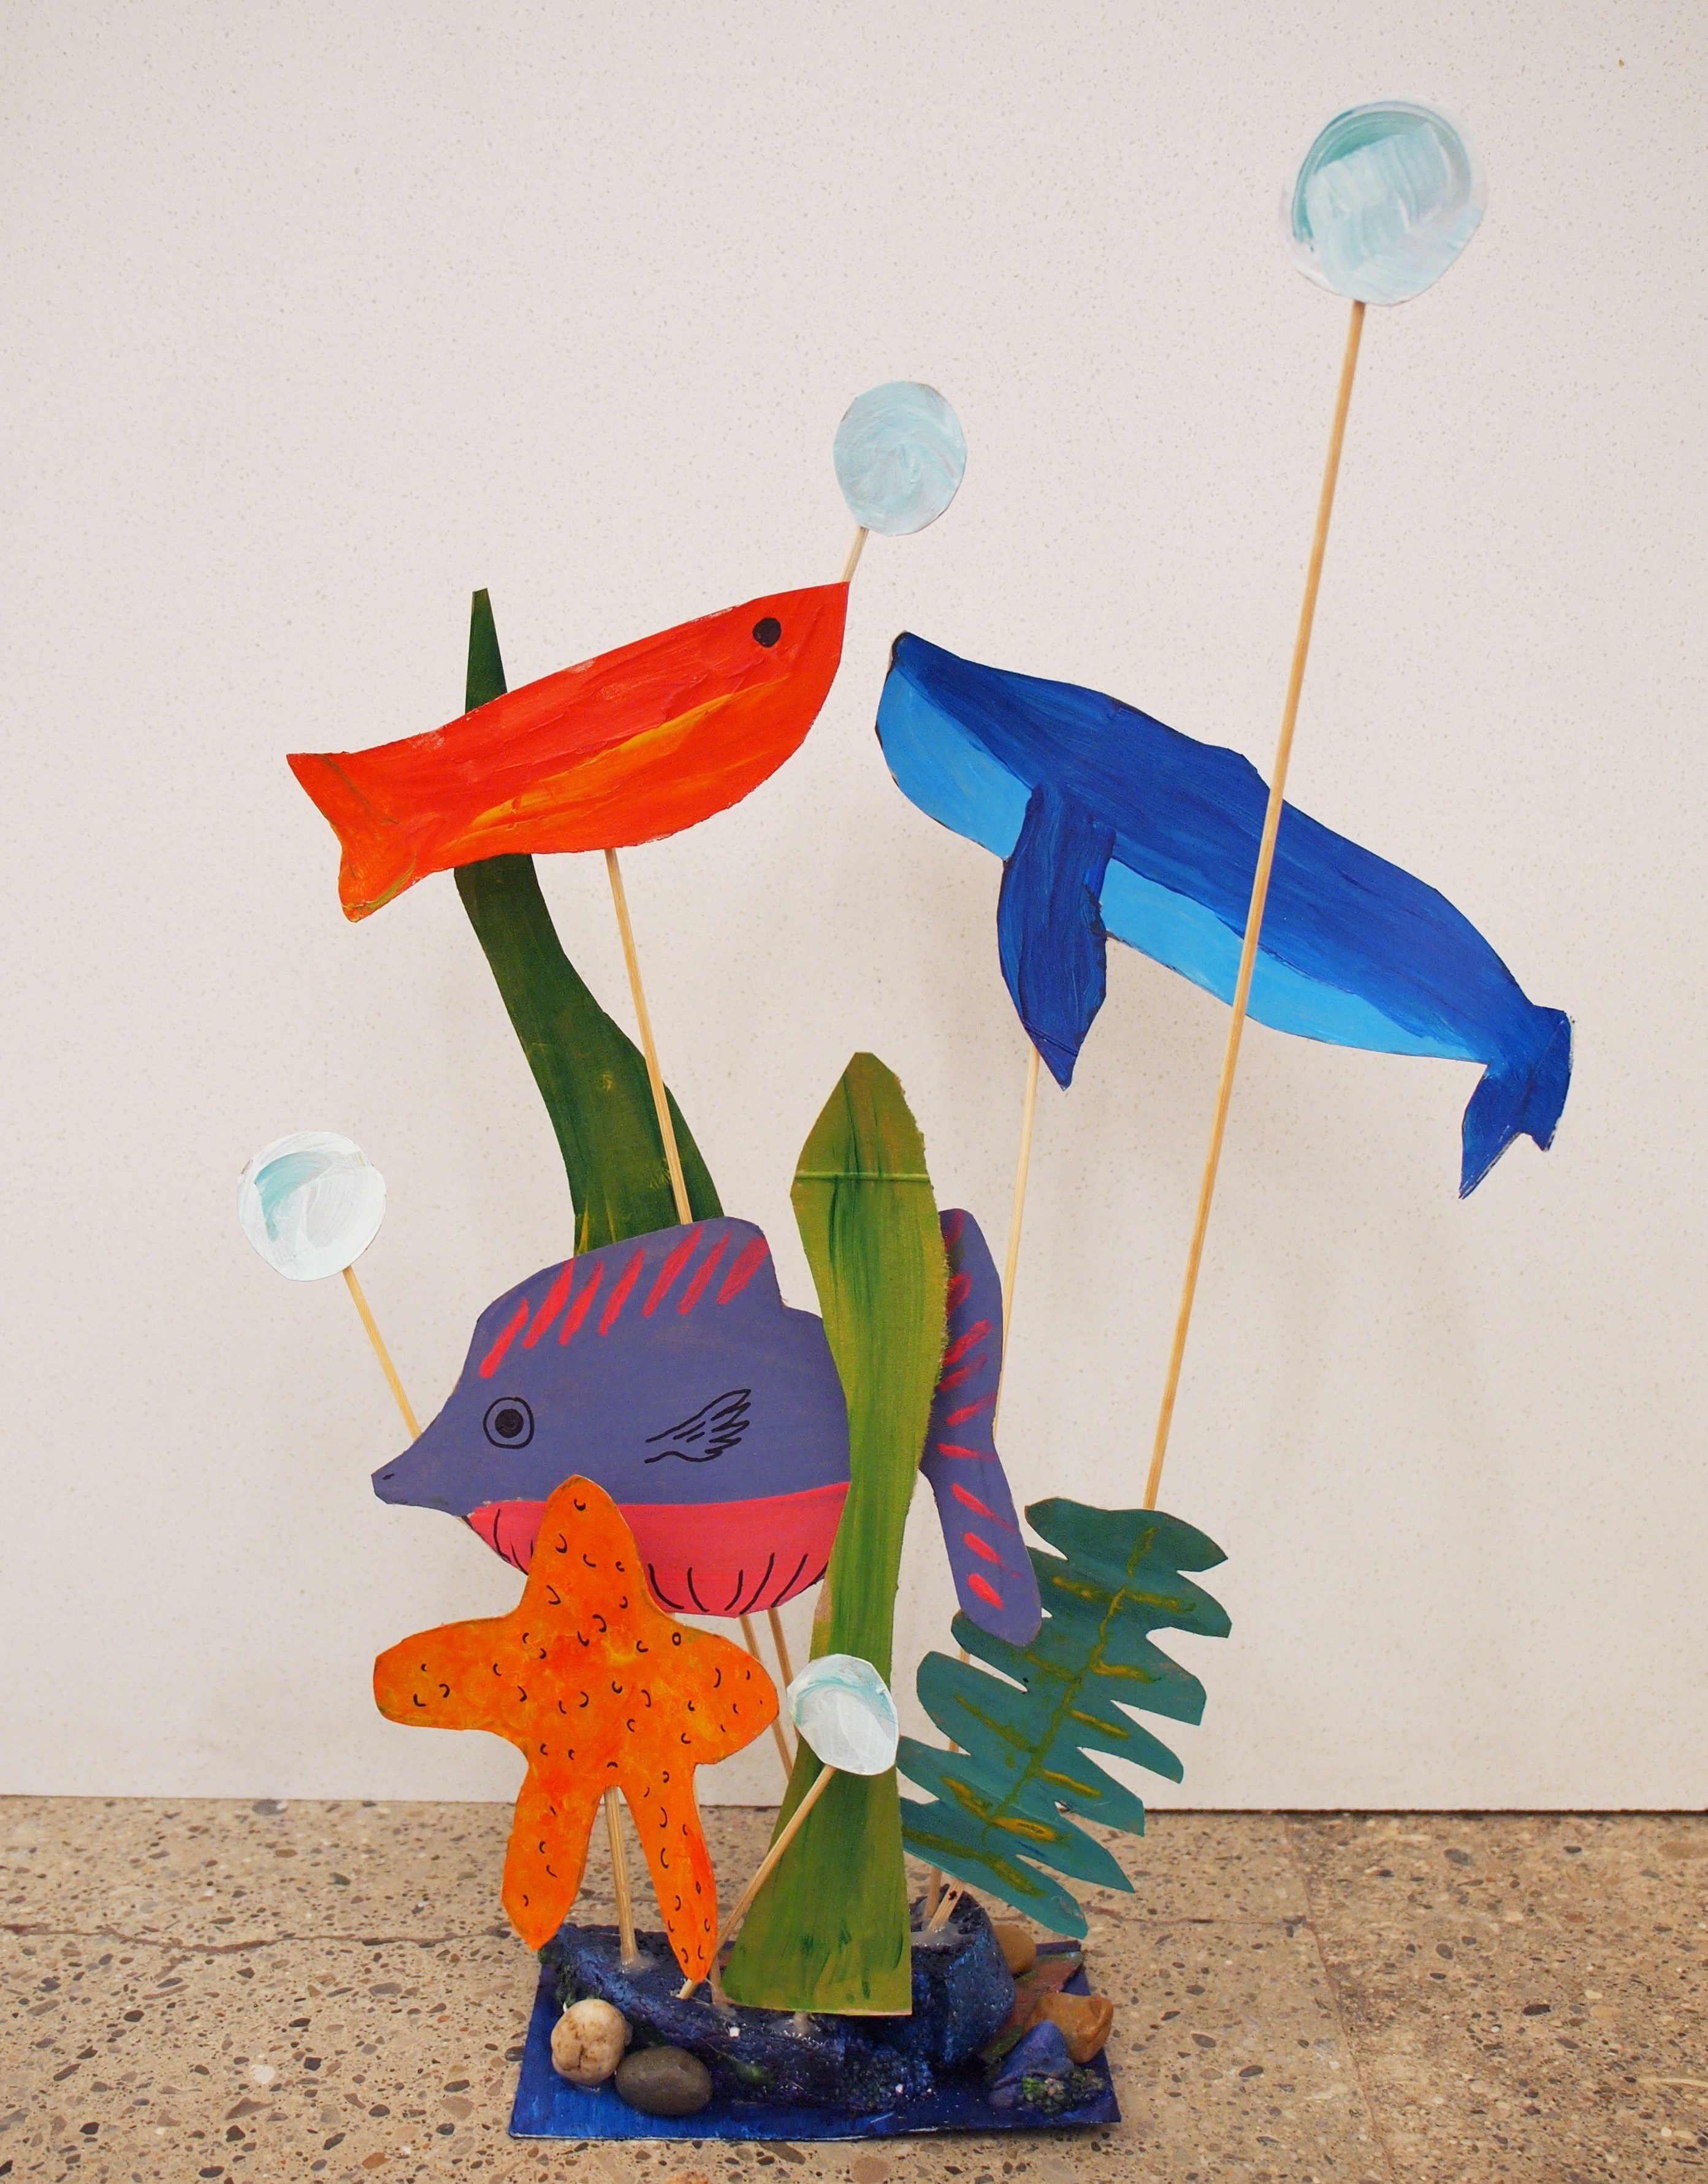 Photo of a painted paper sculpture of fish and whales suspended on wooden skewers